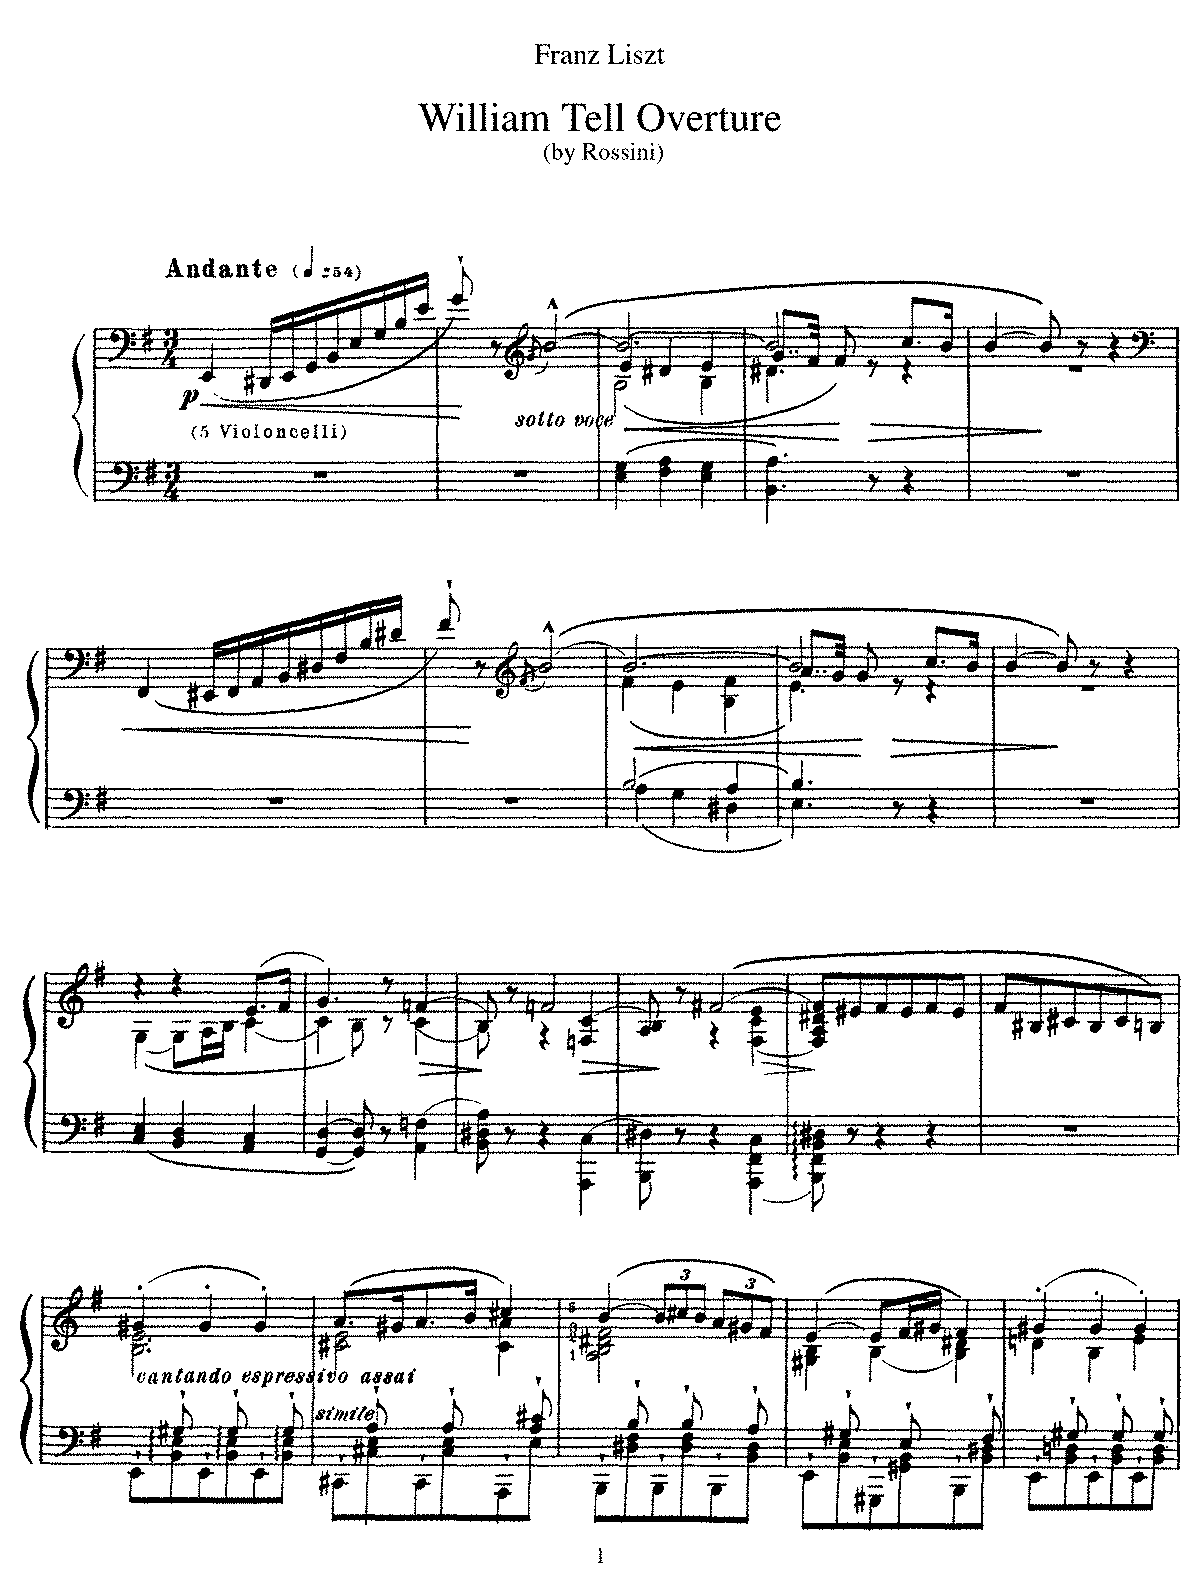 Liszt - William Tell Overture by Rossini.pdf